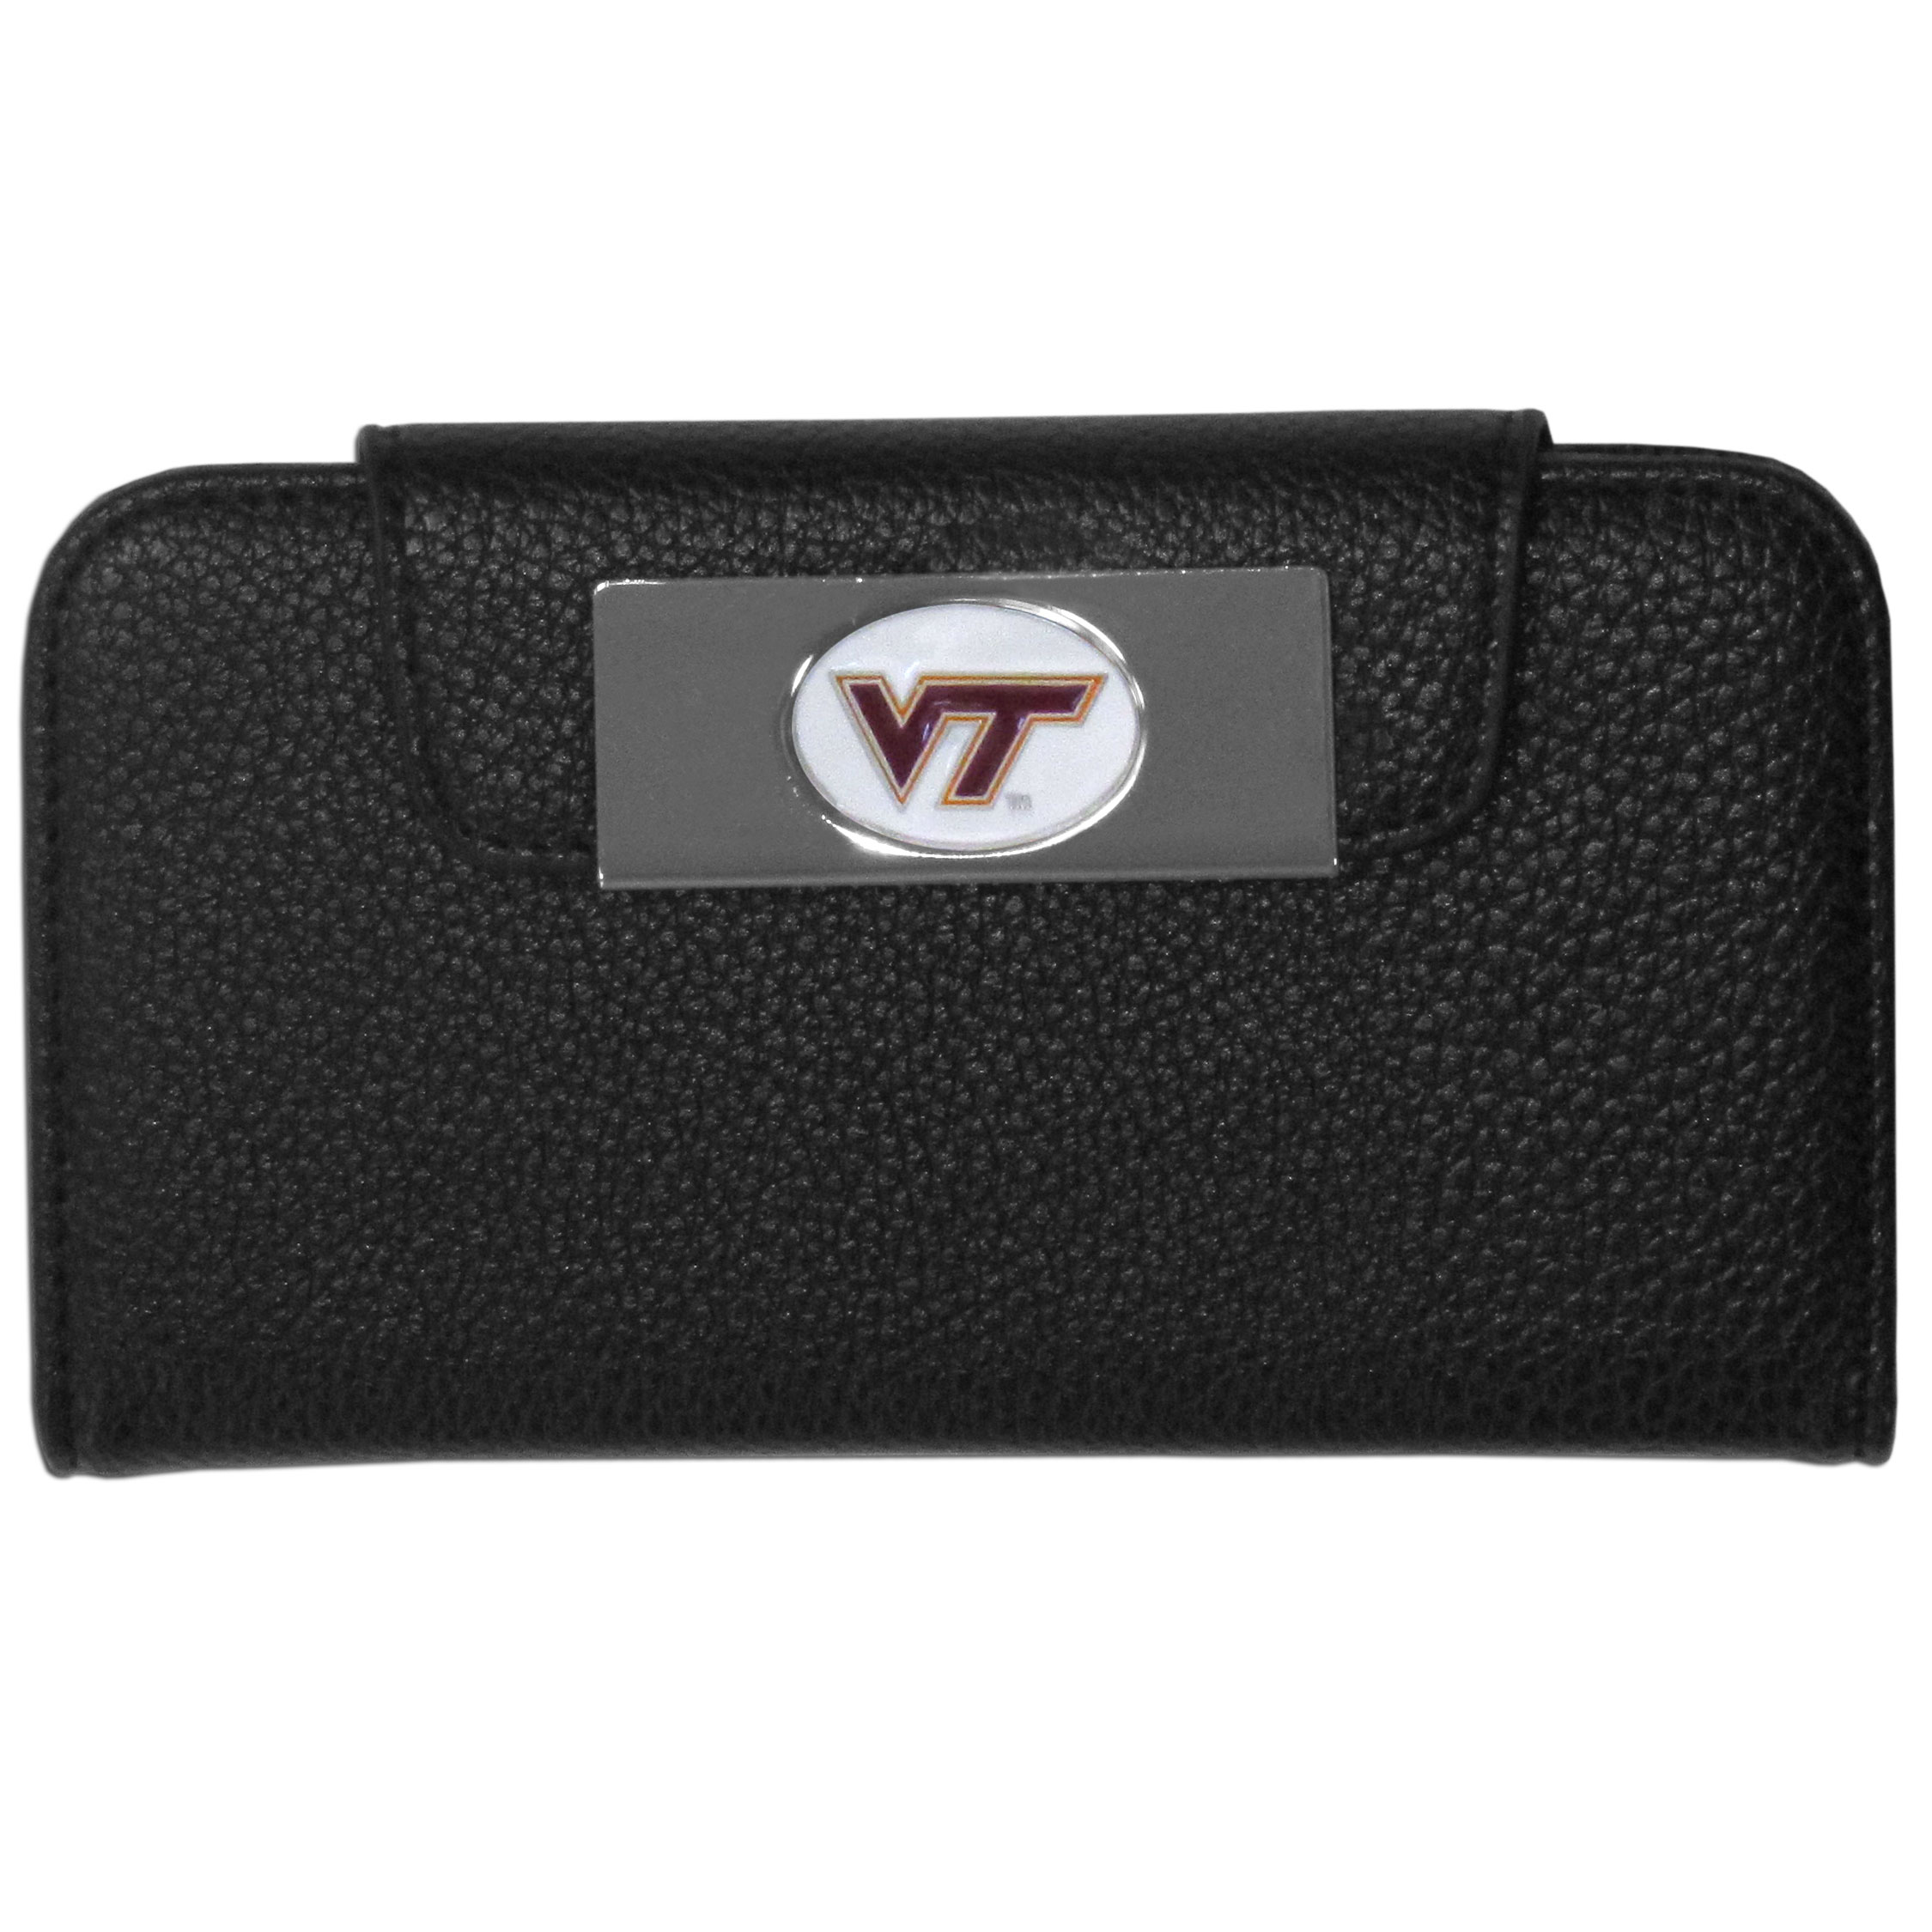 Virginia Tech Hokies Samsung Galaxy S4 Wallet Case - This new & wildly popular case is ideal for those who like to travel light! The stylish case has an inner hard shell that securely holds your phone while allowing complete access to the phone's functionality. The flip cover has slots for credit cards, business cards and identification. The magnetic flip cover has a metal Virginia Tech Hokies emblem on a high polish chrome backing. Fits the Samsung Galaxy S4